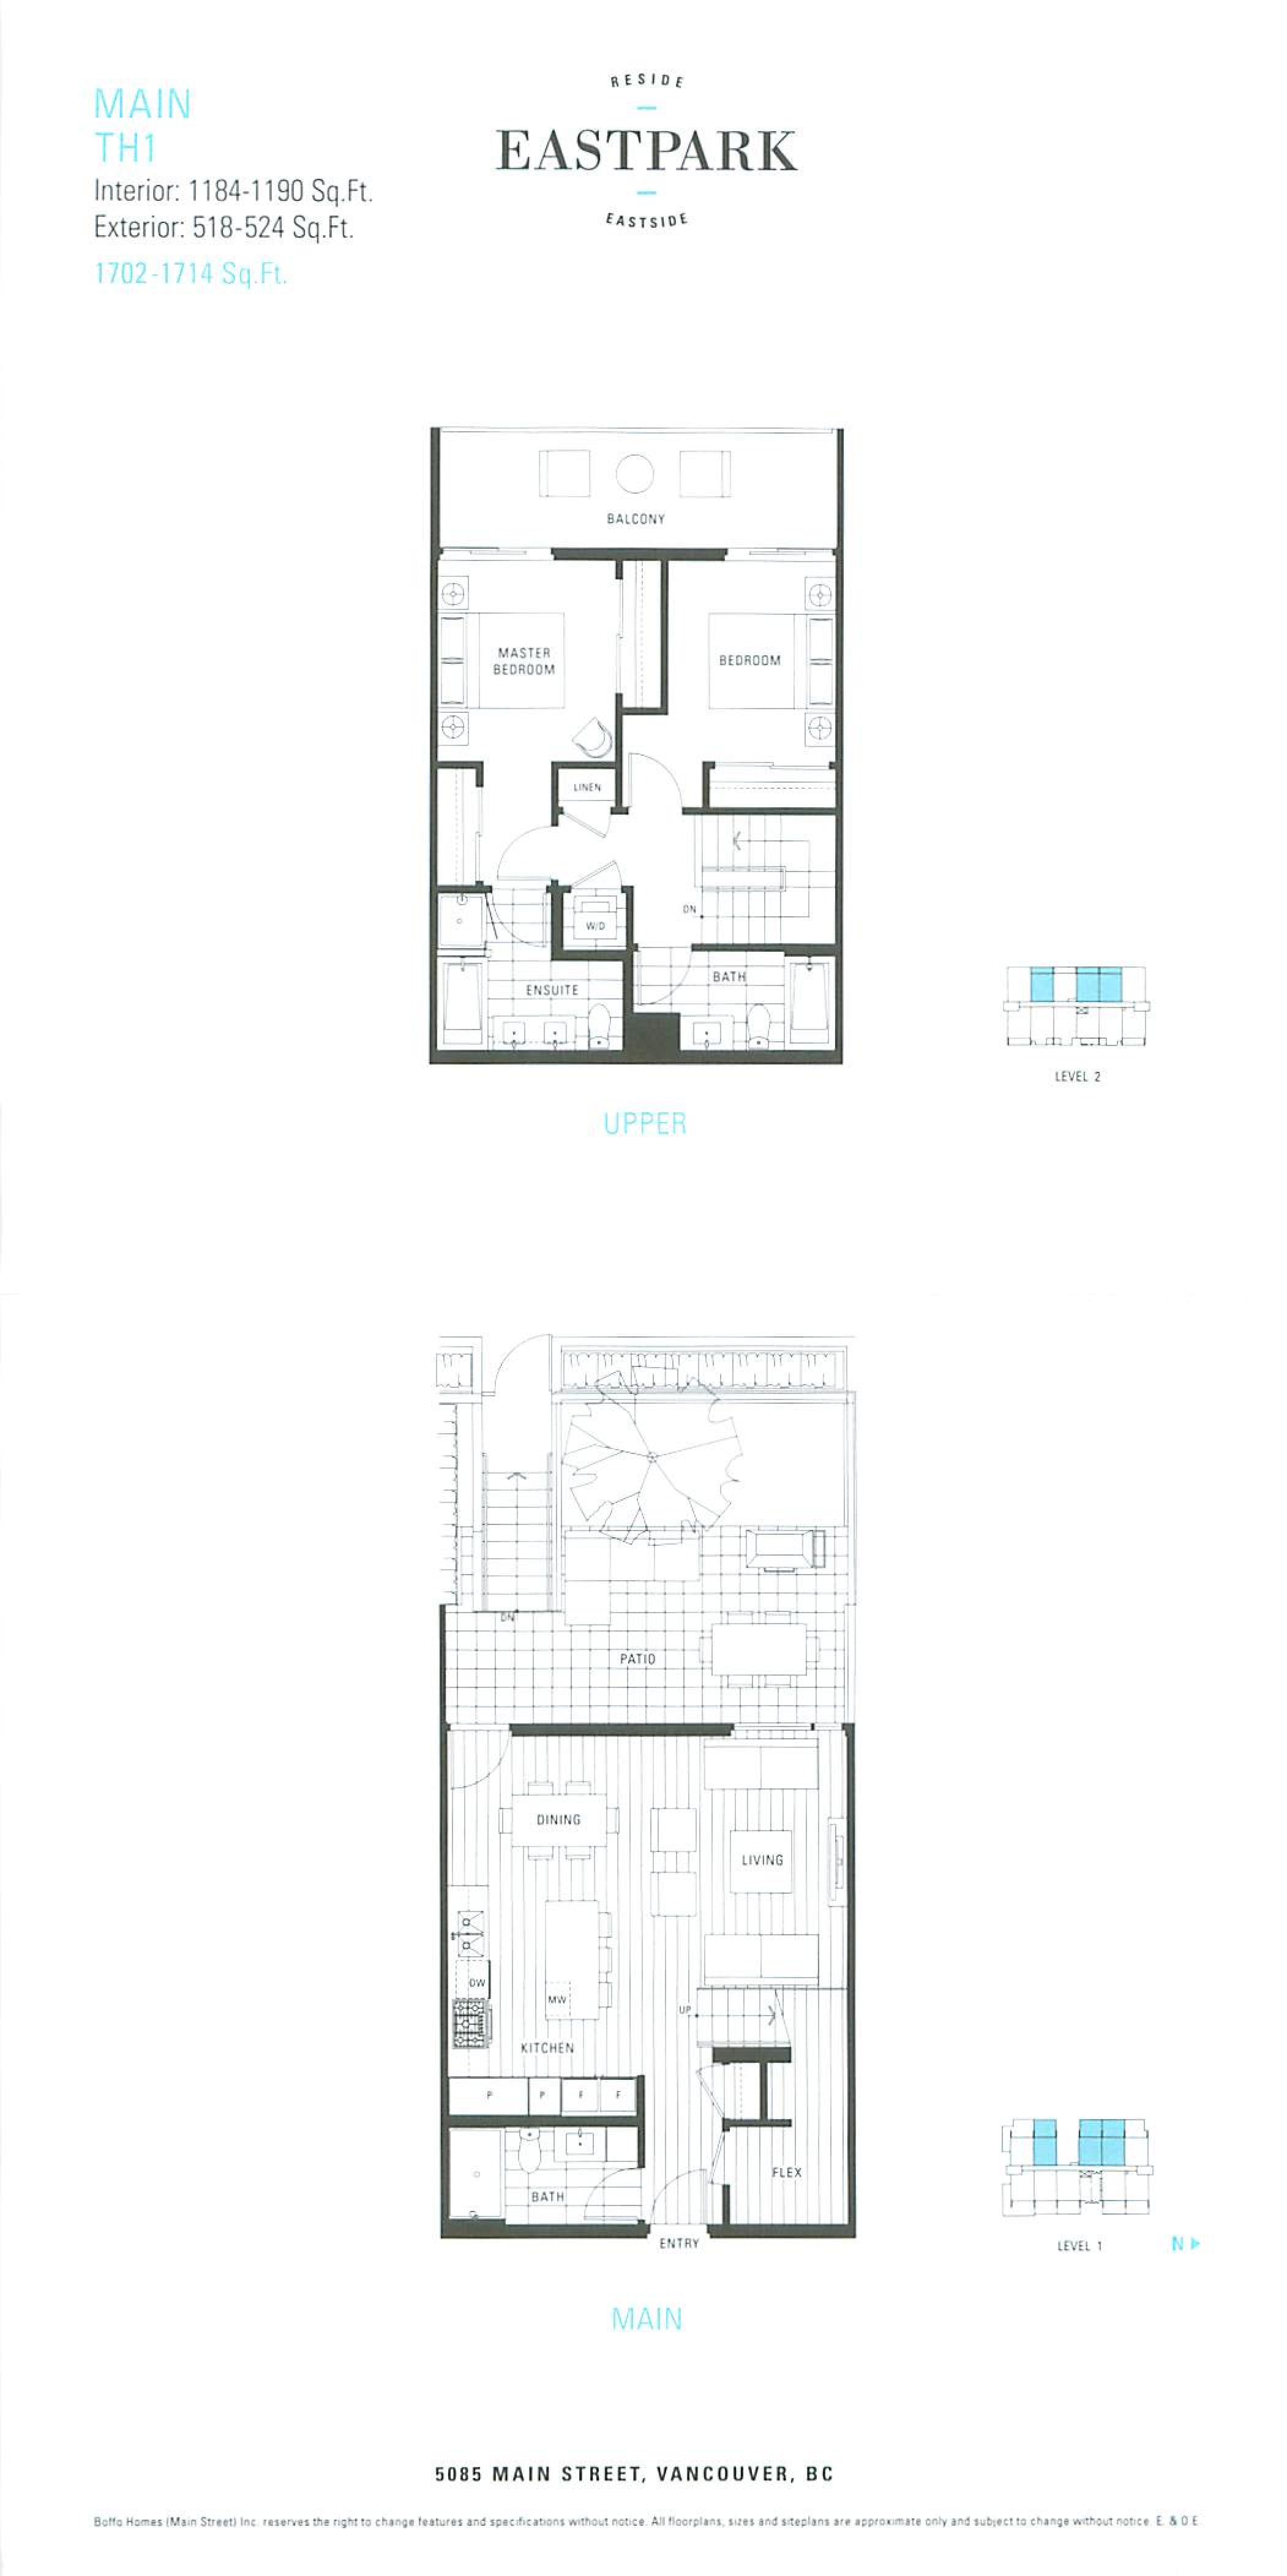 EastPark Main Larger Floor Plans Mike Stewart-page-006